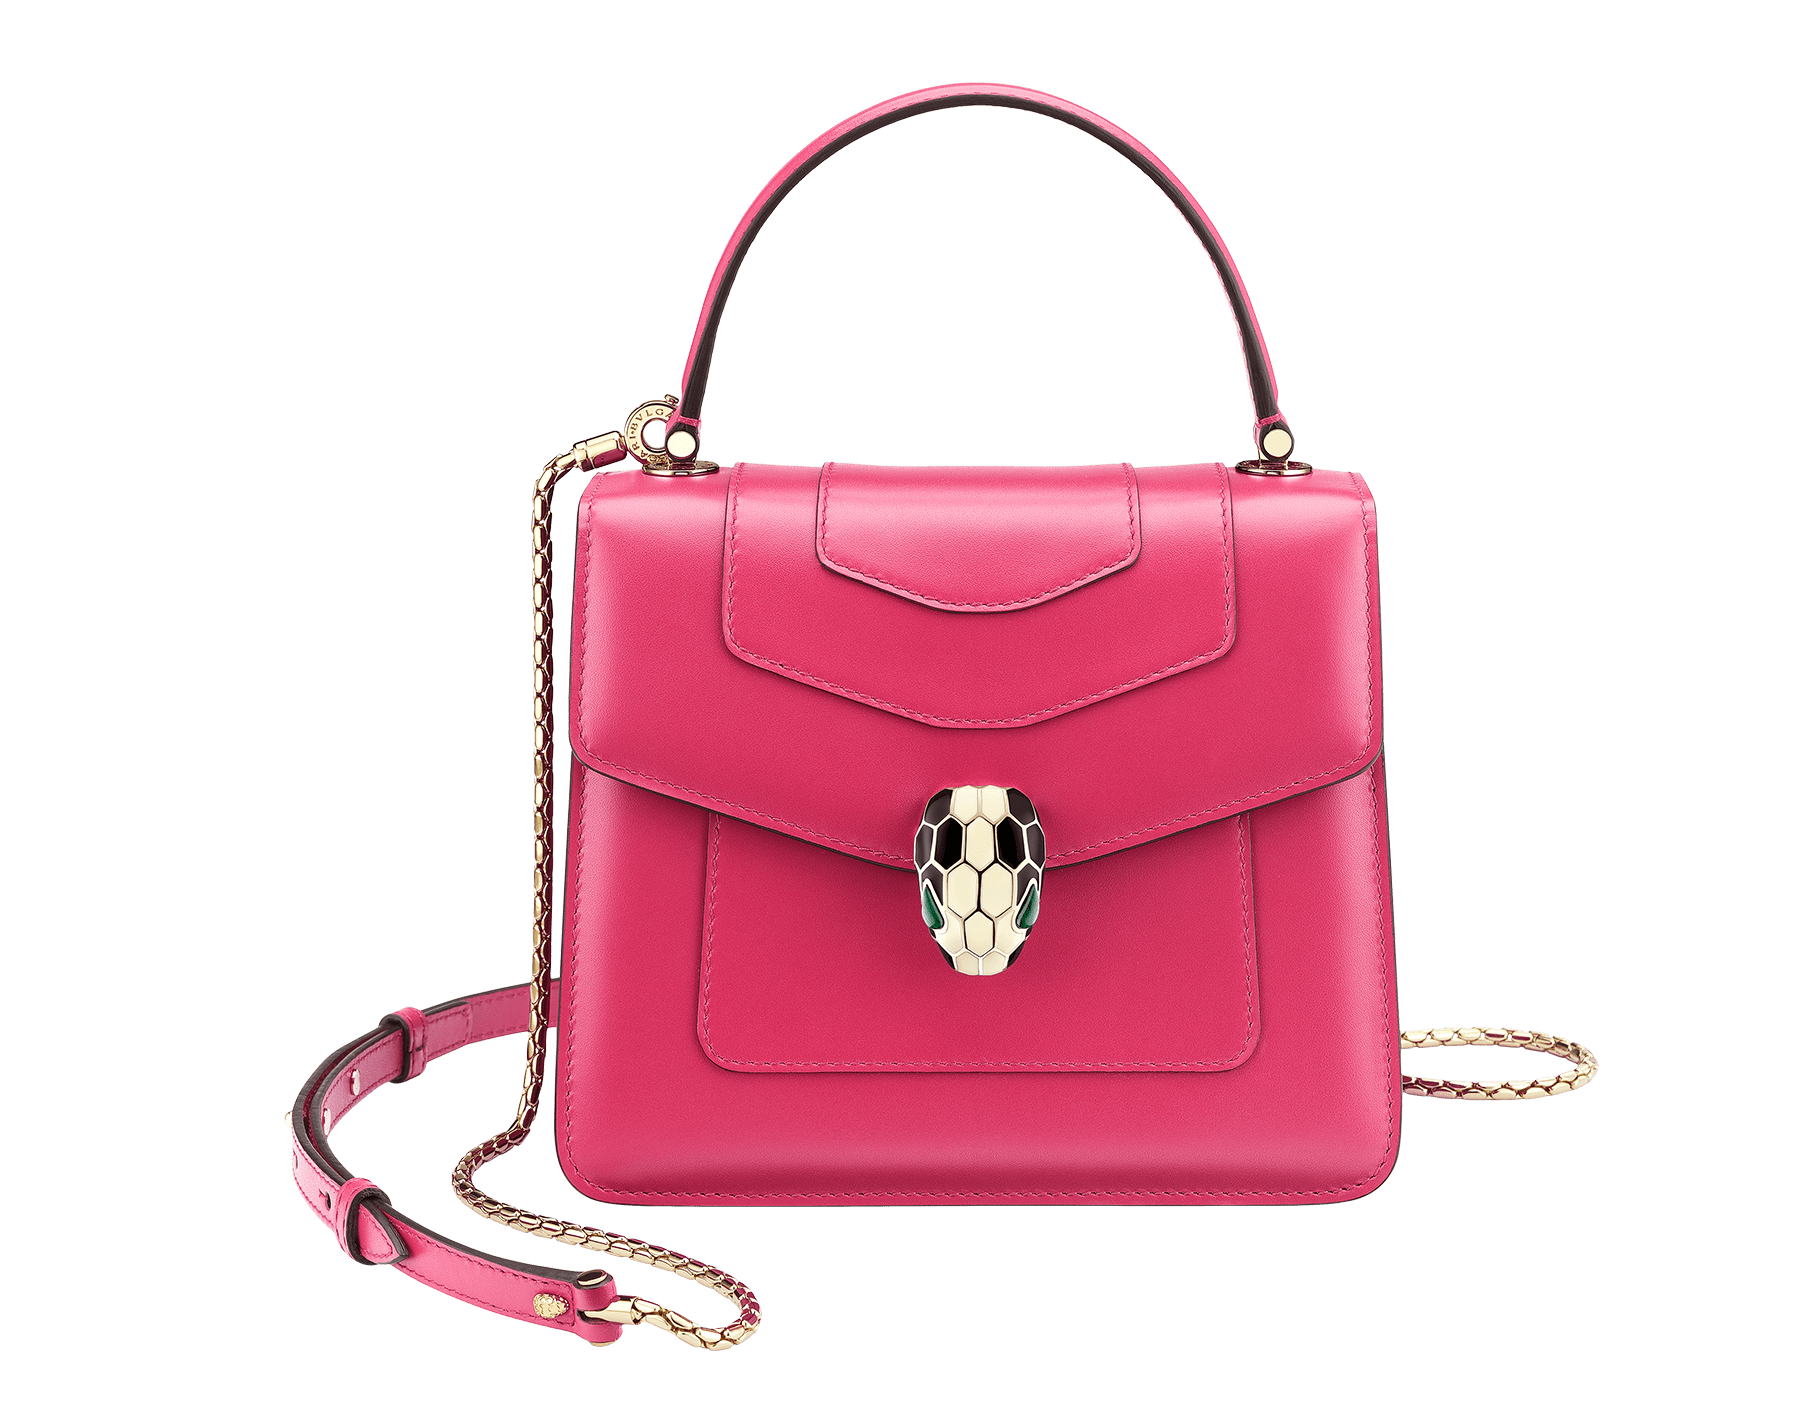 """""""Serpenti Forever"""" crossbody bag in jazzy tourmaline calf leather. Iconic snakehead closure in light gold plated brass enriched with black and white enamel and green malachite eyes. 287024 image 1"""